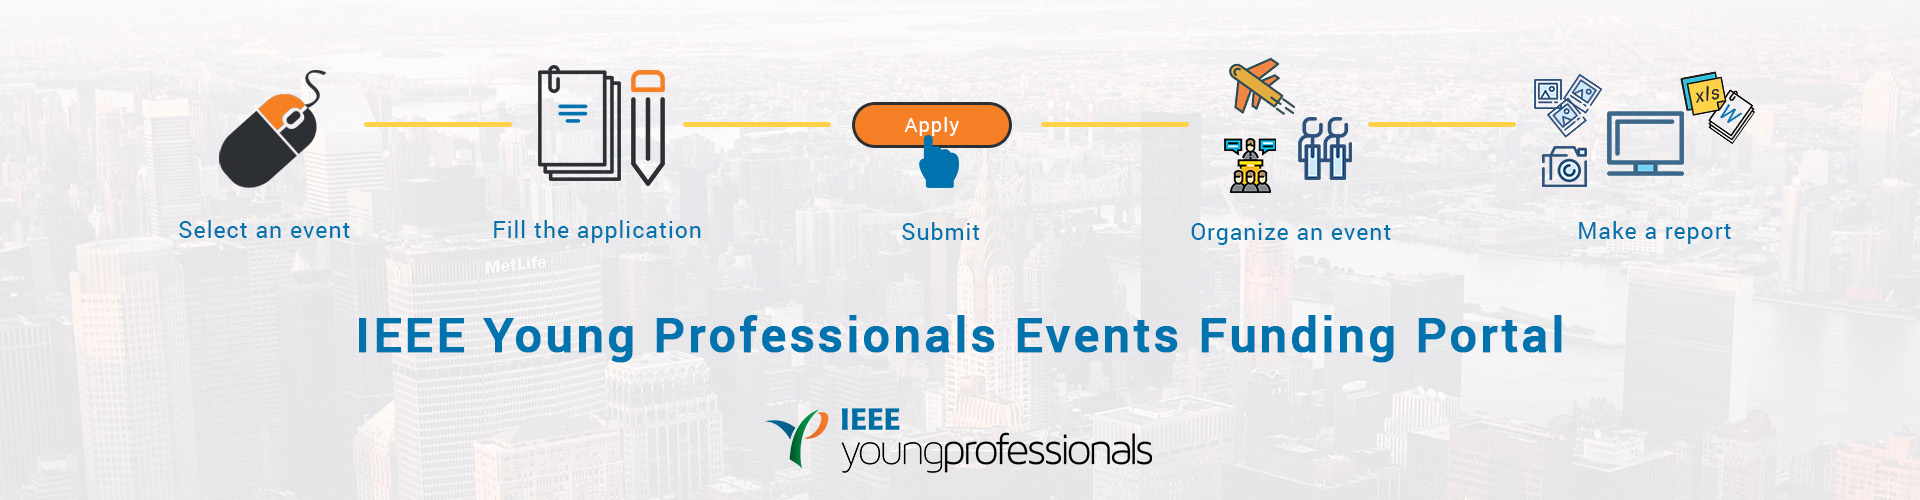 IEEE Young Professionals Events Funding Portal